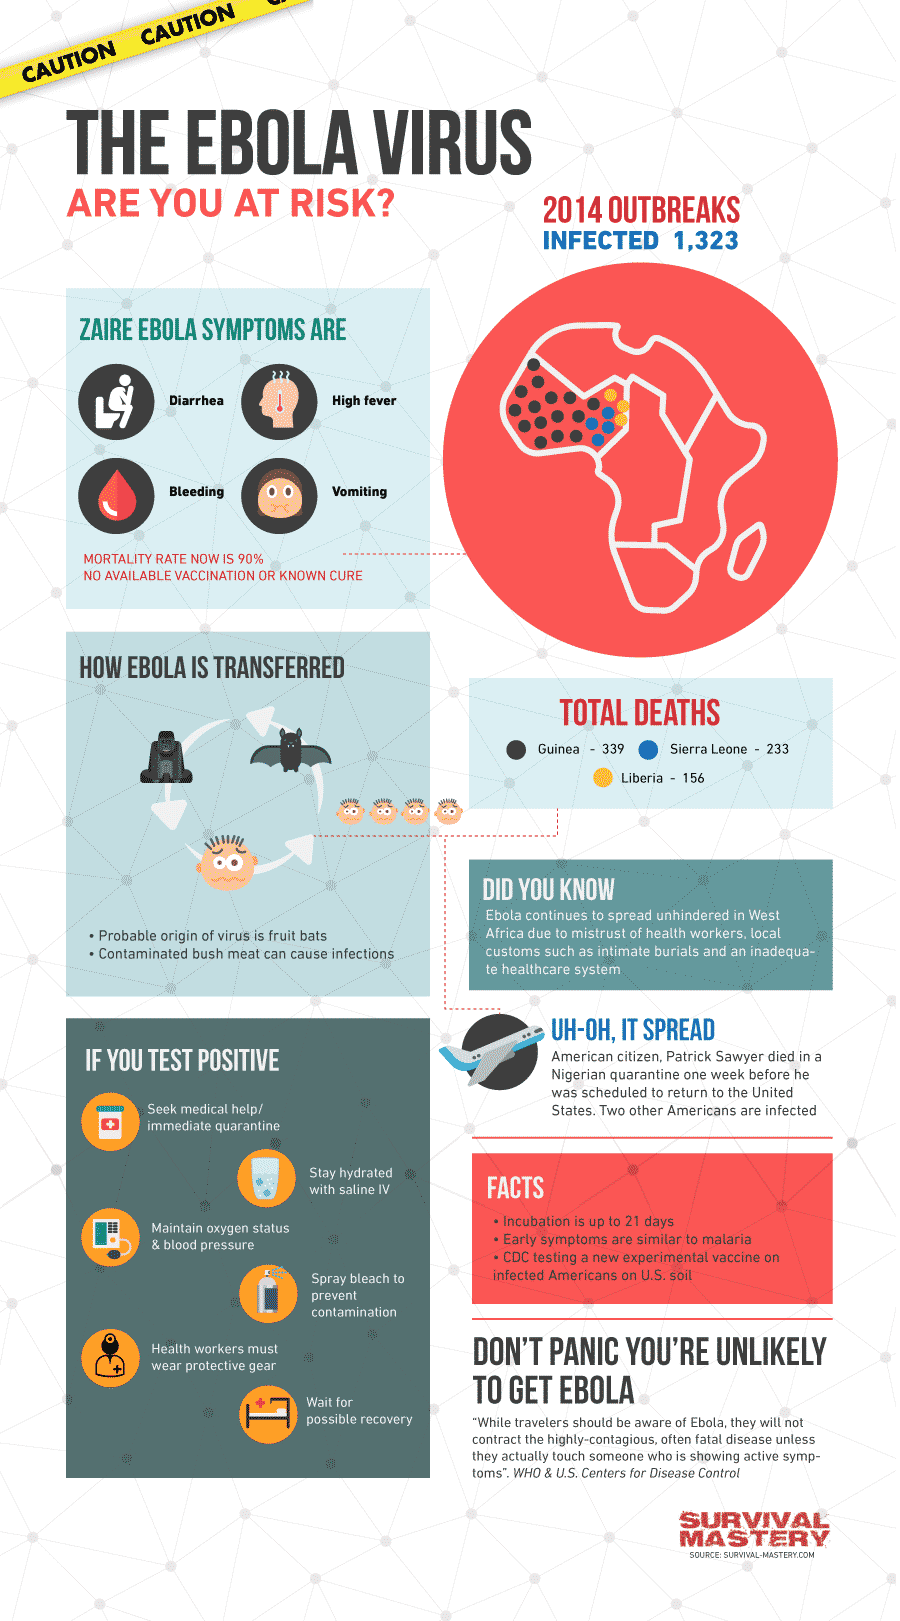 The Ebola facts infographic